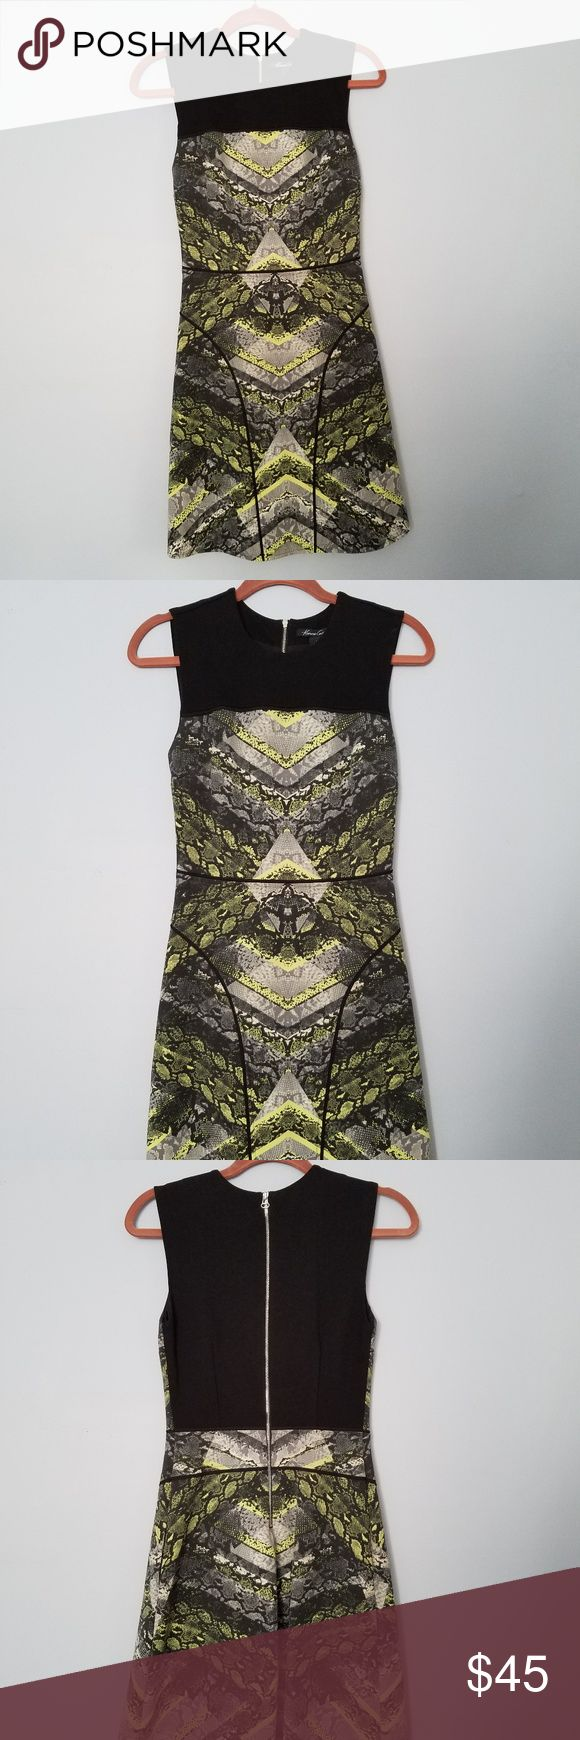 Kenneth Cole Snakeskin Dress MUST HAVE! Kenneth Cole New York in a mesmerizing print of chevron stripes layered over a black and neon yellow snakeskin pattern defines a sleeveless, fitted dress accented with solid black for the yoke, back bodice and piping trim. Exposed back-zip closure, side-seam pockets, lined. This dress is very true to size and, very comfortably, fits like a glove. Only worn twice and in EXCELLENT condition! Kenneth Cole Dresses